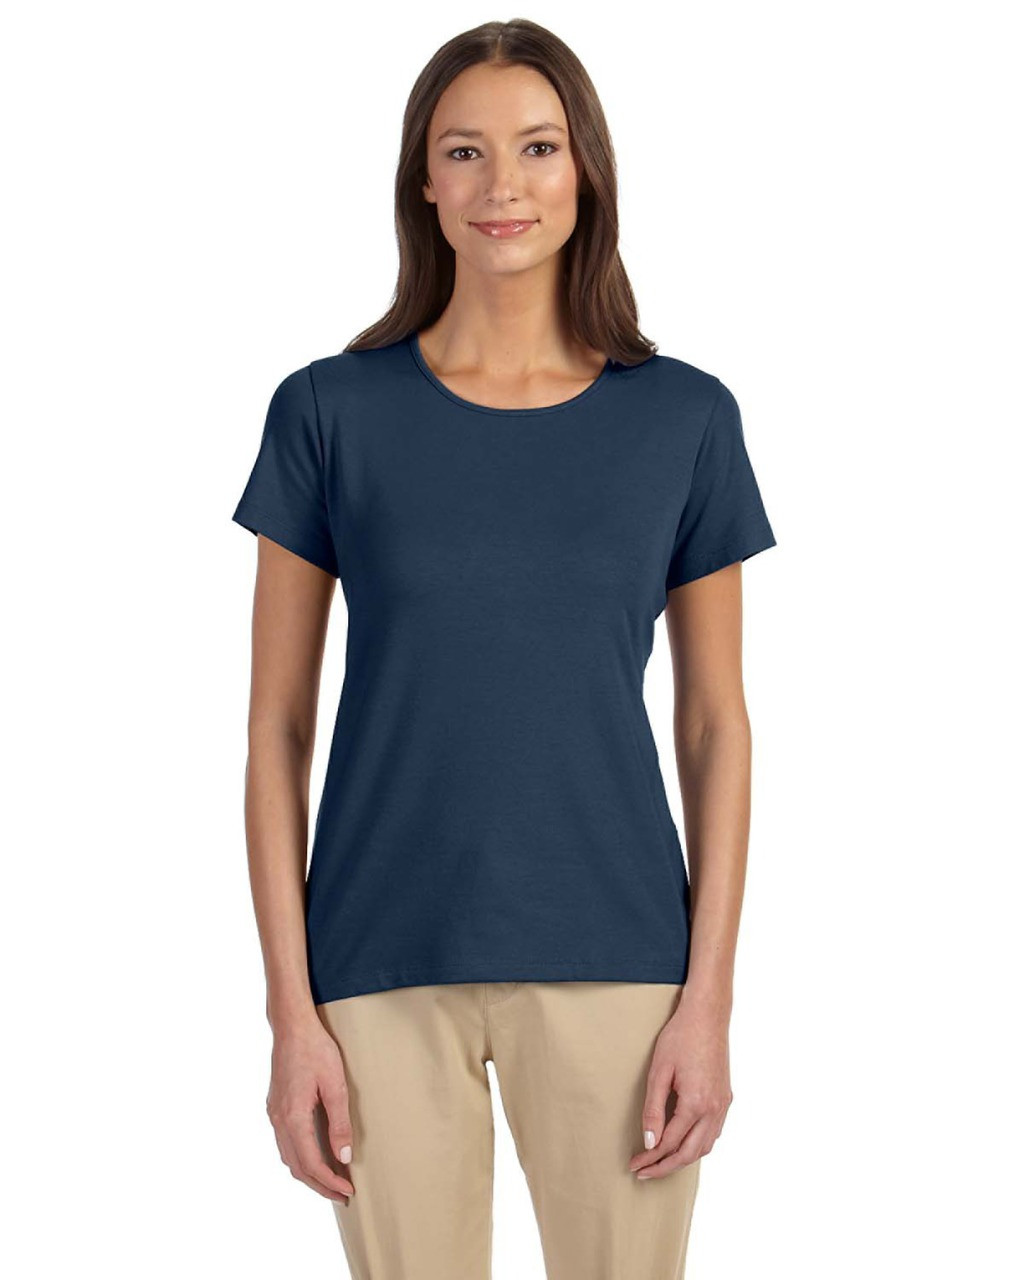 Navy - DP182W Devon & Jones Ladies' Perfect Fit™ Shell T-Shirt | Blankclothing.ca